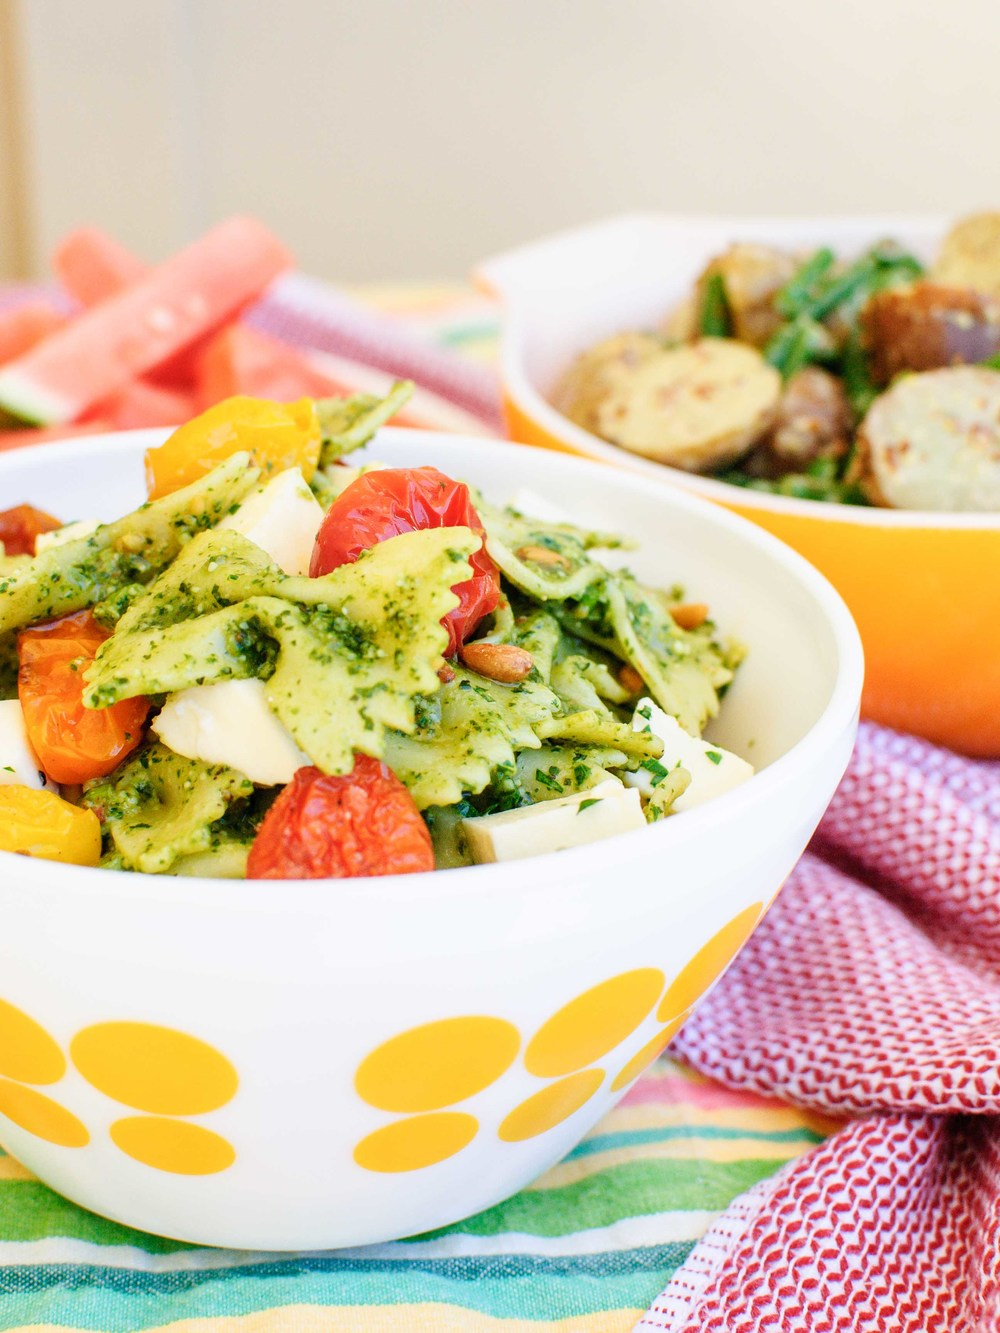 Pesto Pasta Salad with Roasted Tomatoes